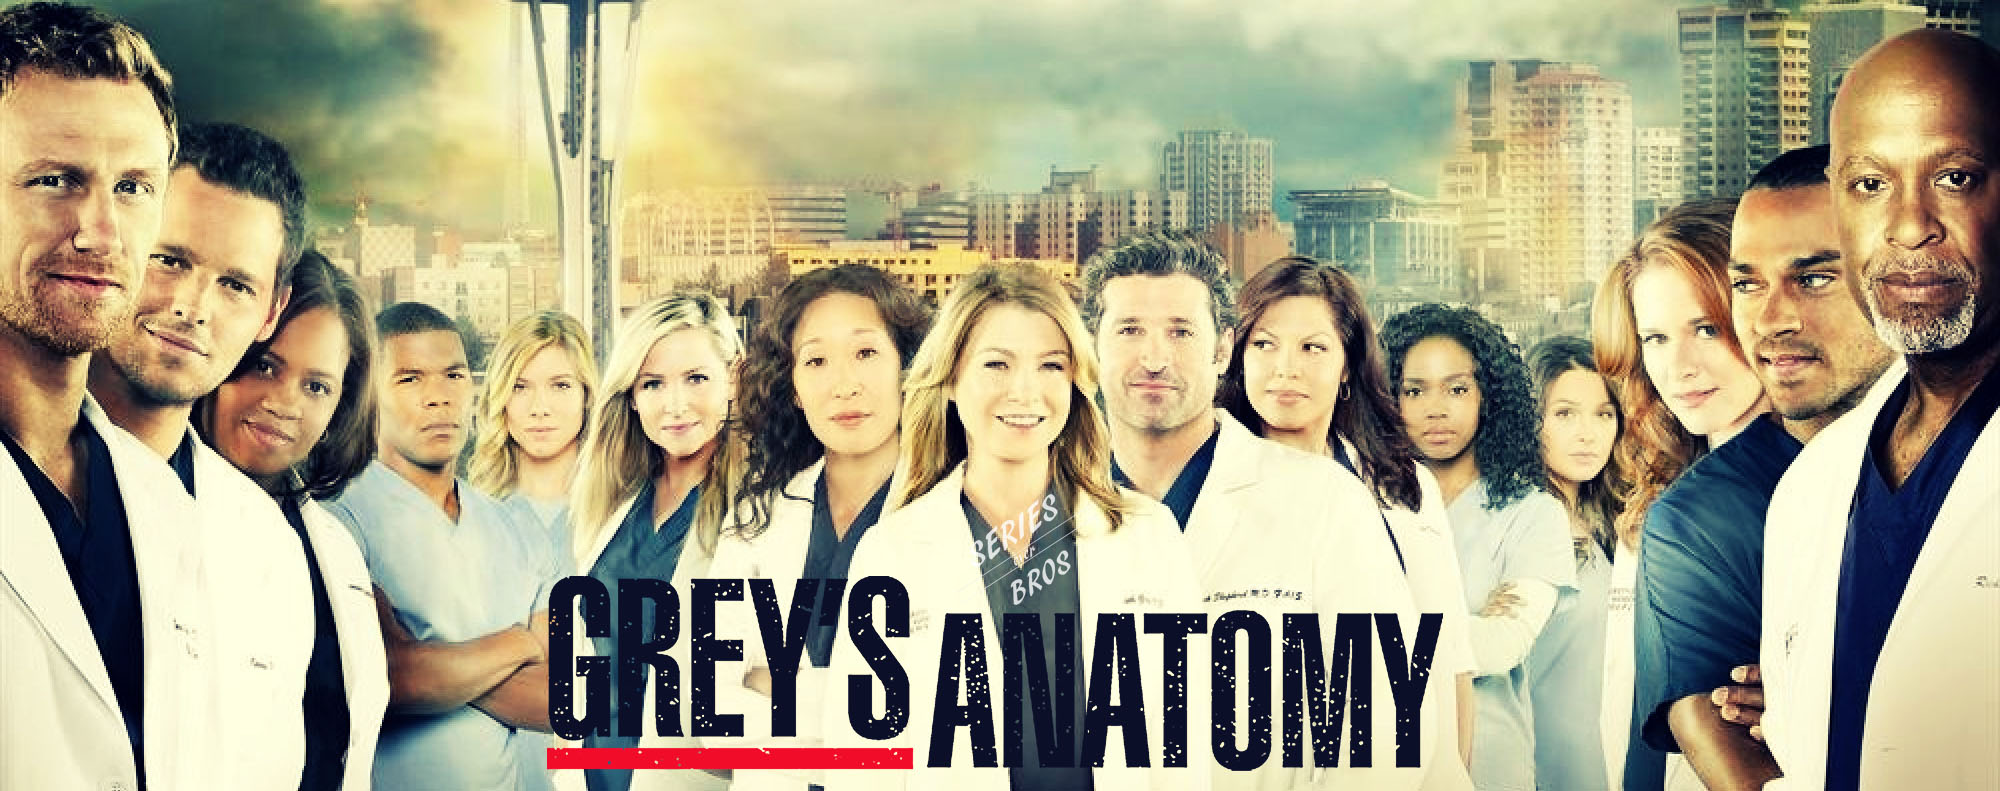 Greys Anatomy Series Over Bros